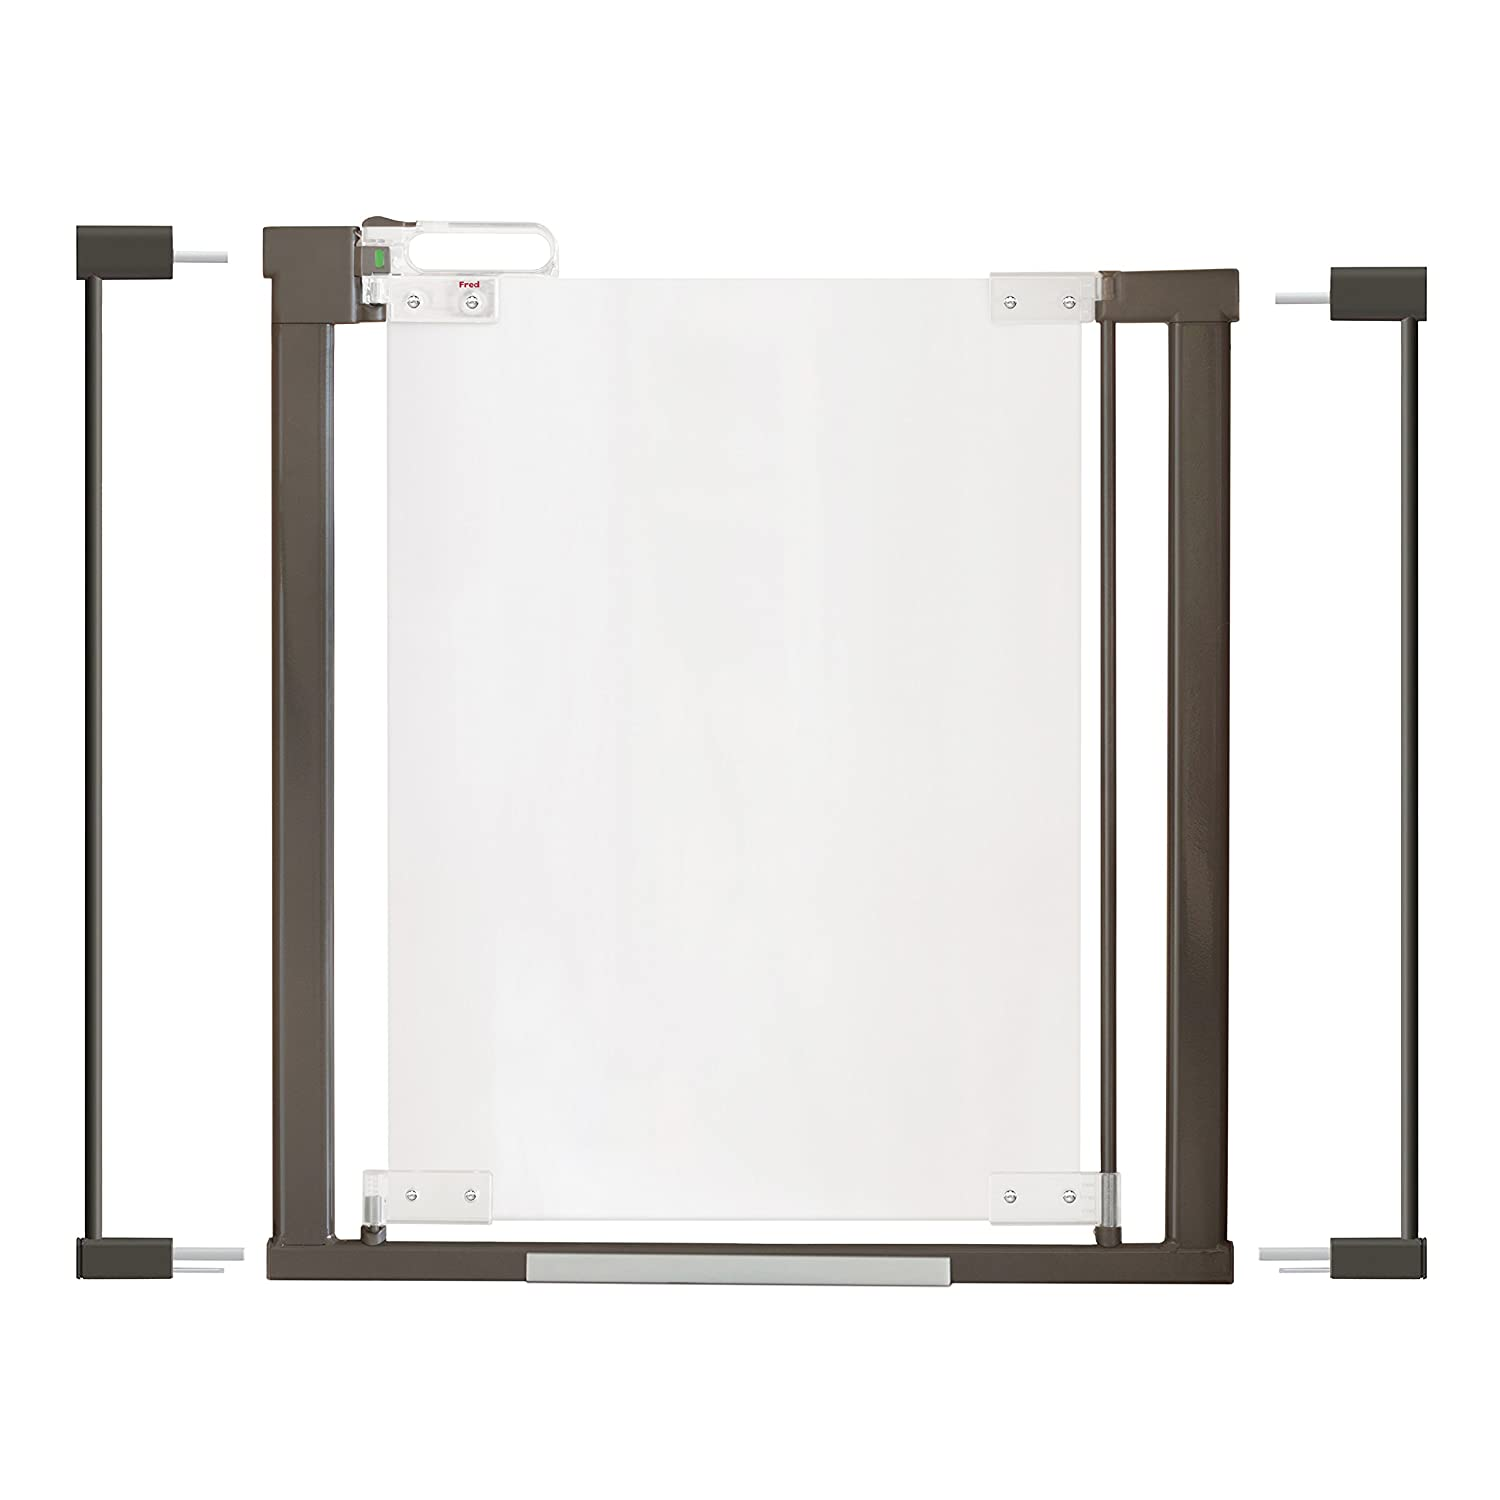 Fred Safety Pressure Gate Extension Kit, Pure White, Extend Pressure Gate to Fit Openings Up to 124.5cm